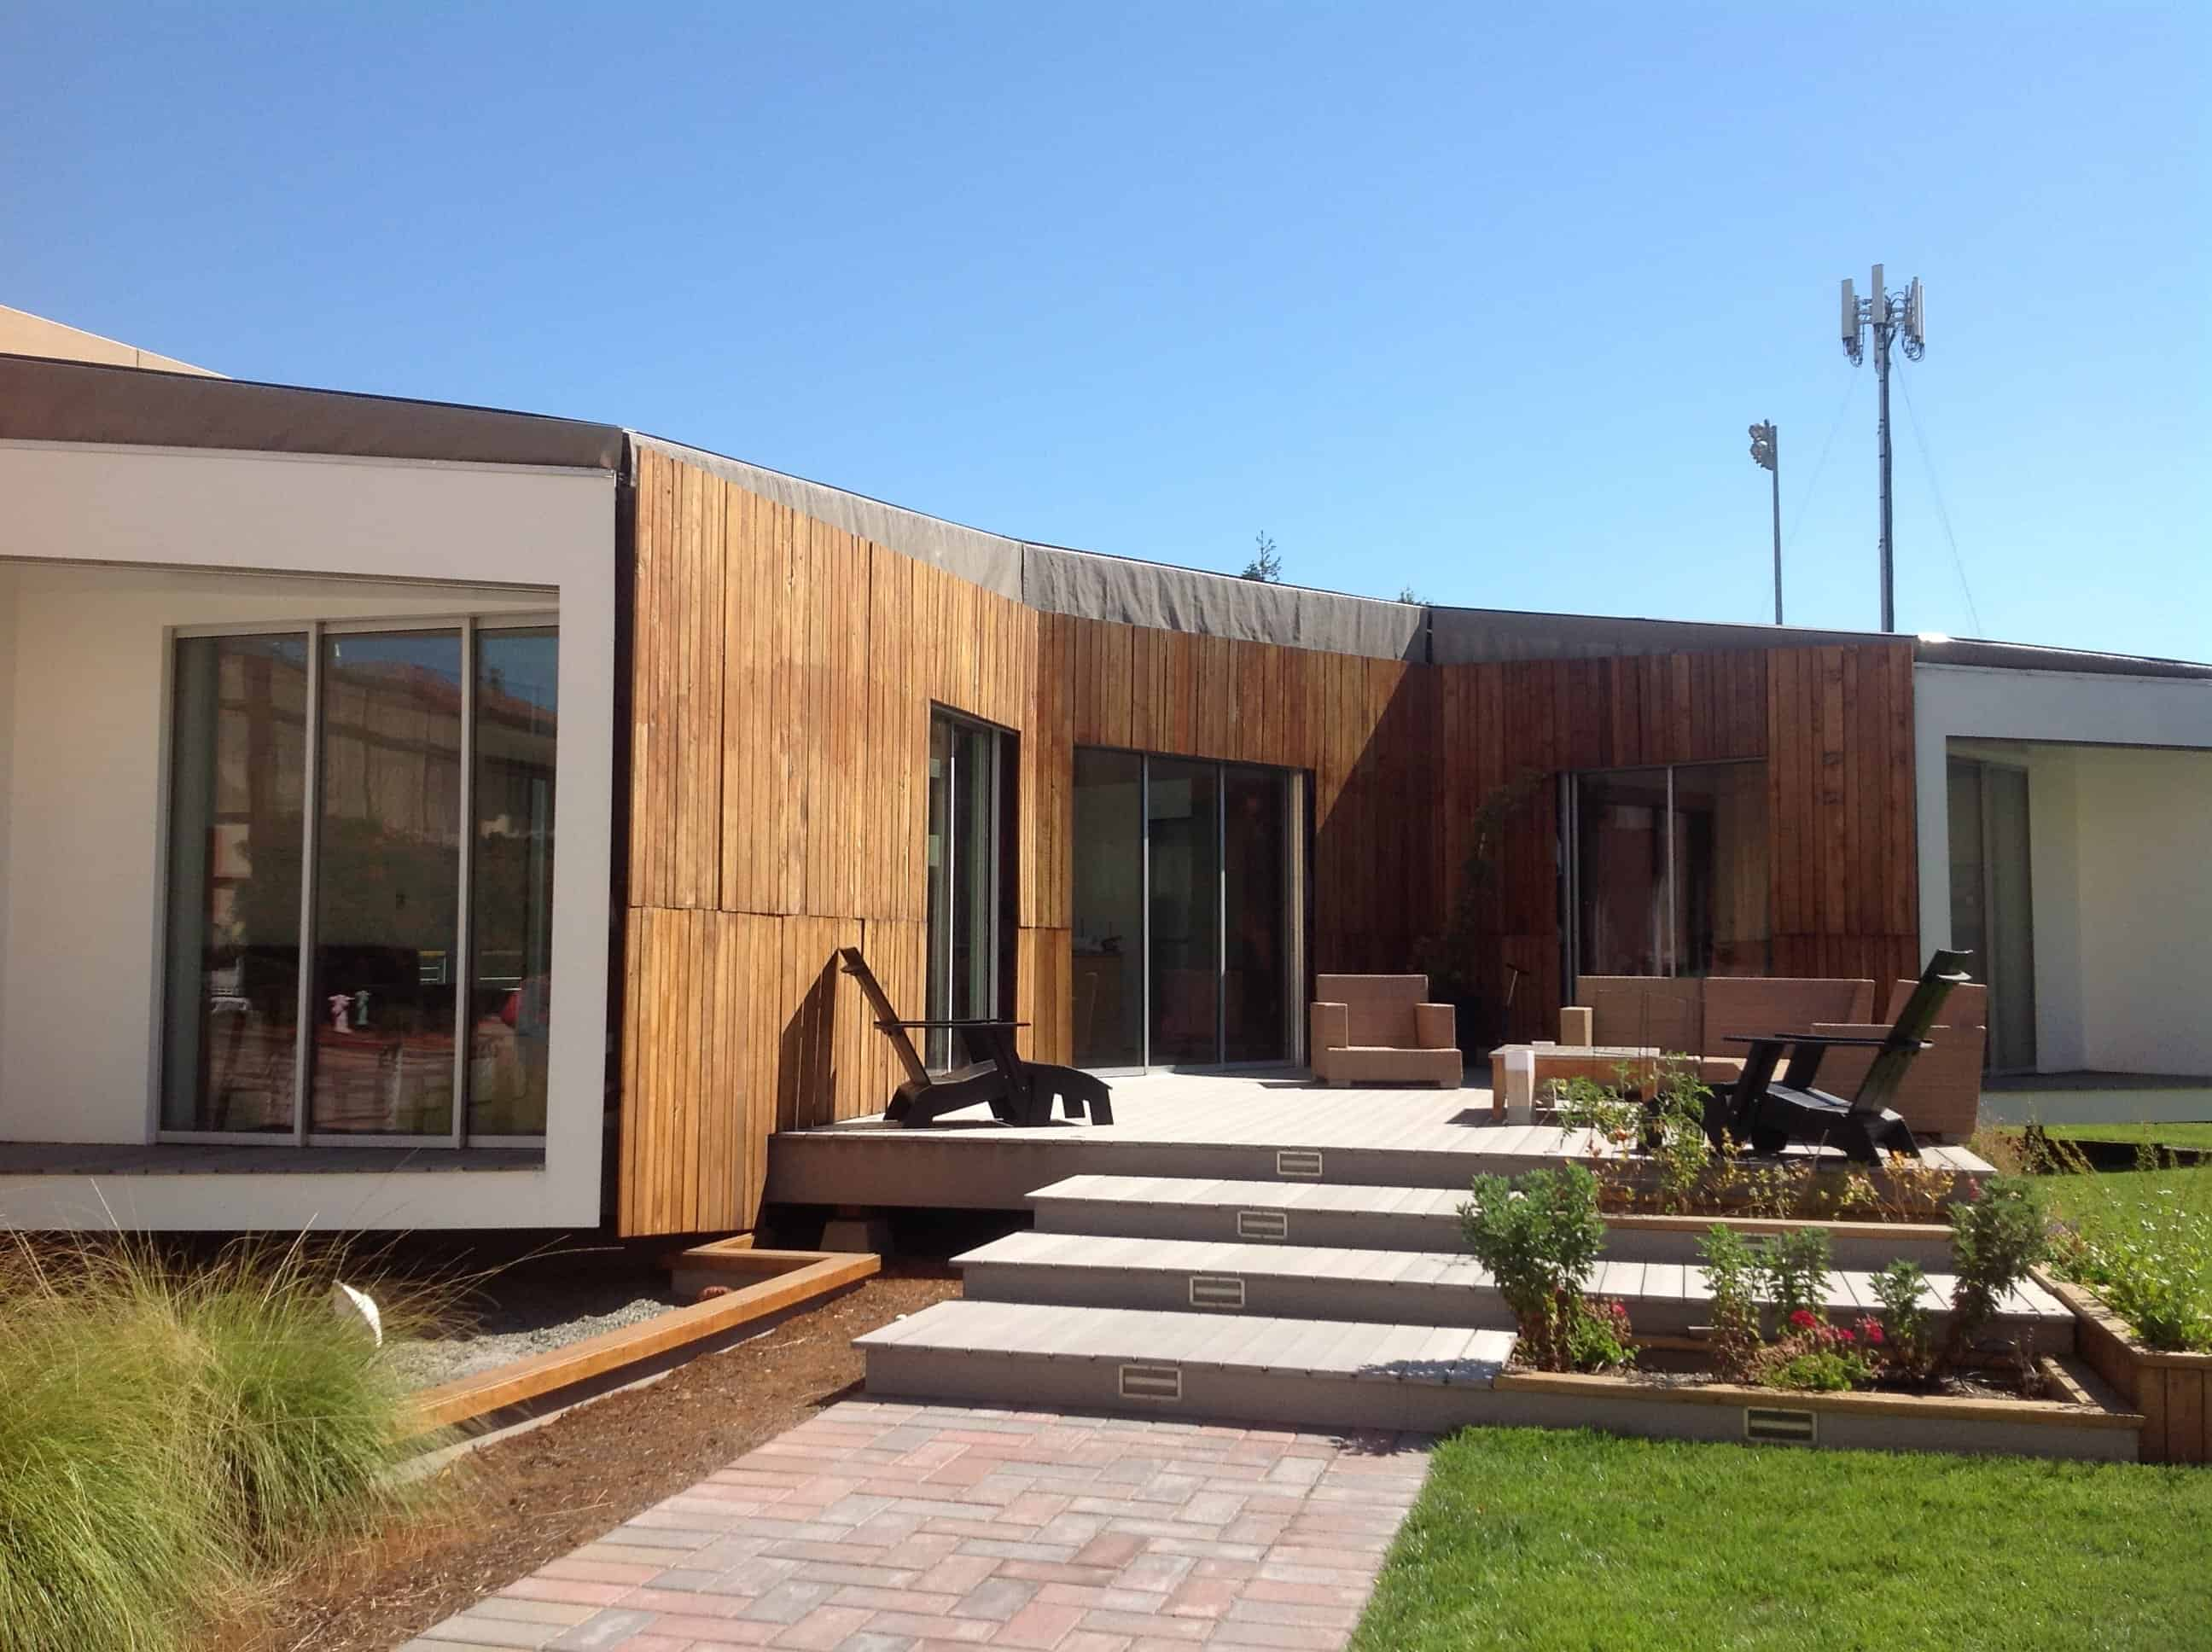 SCU Solar Decathlon House